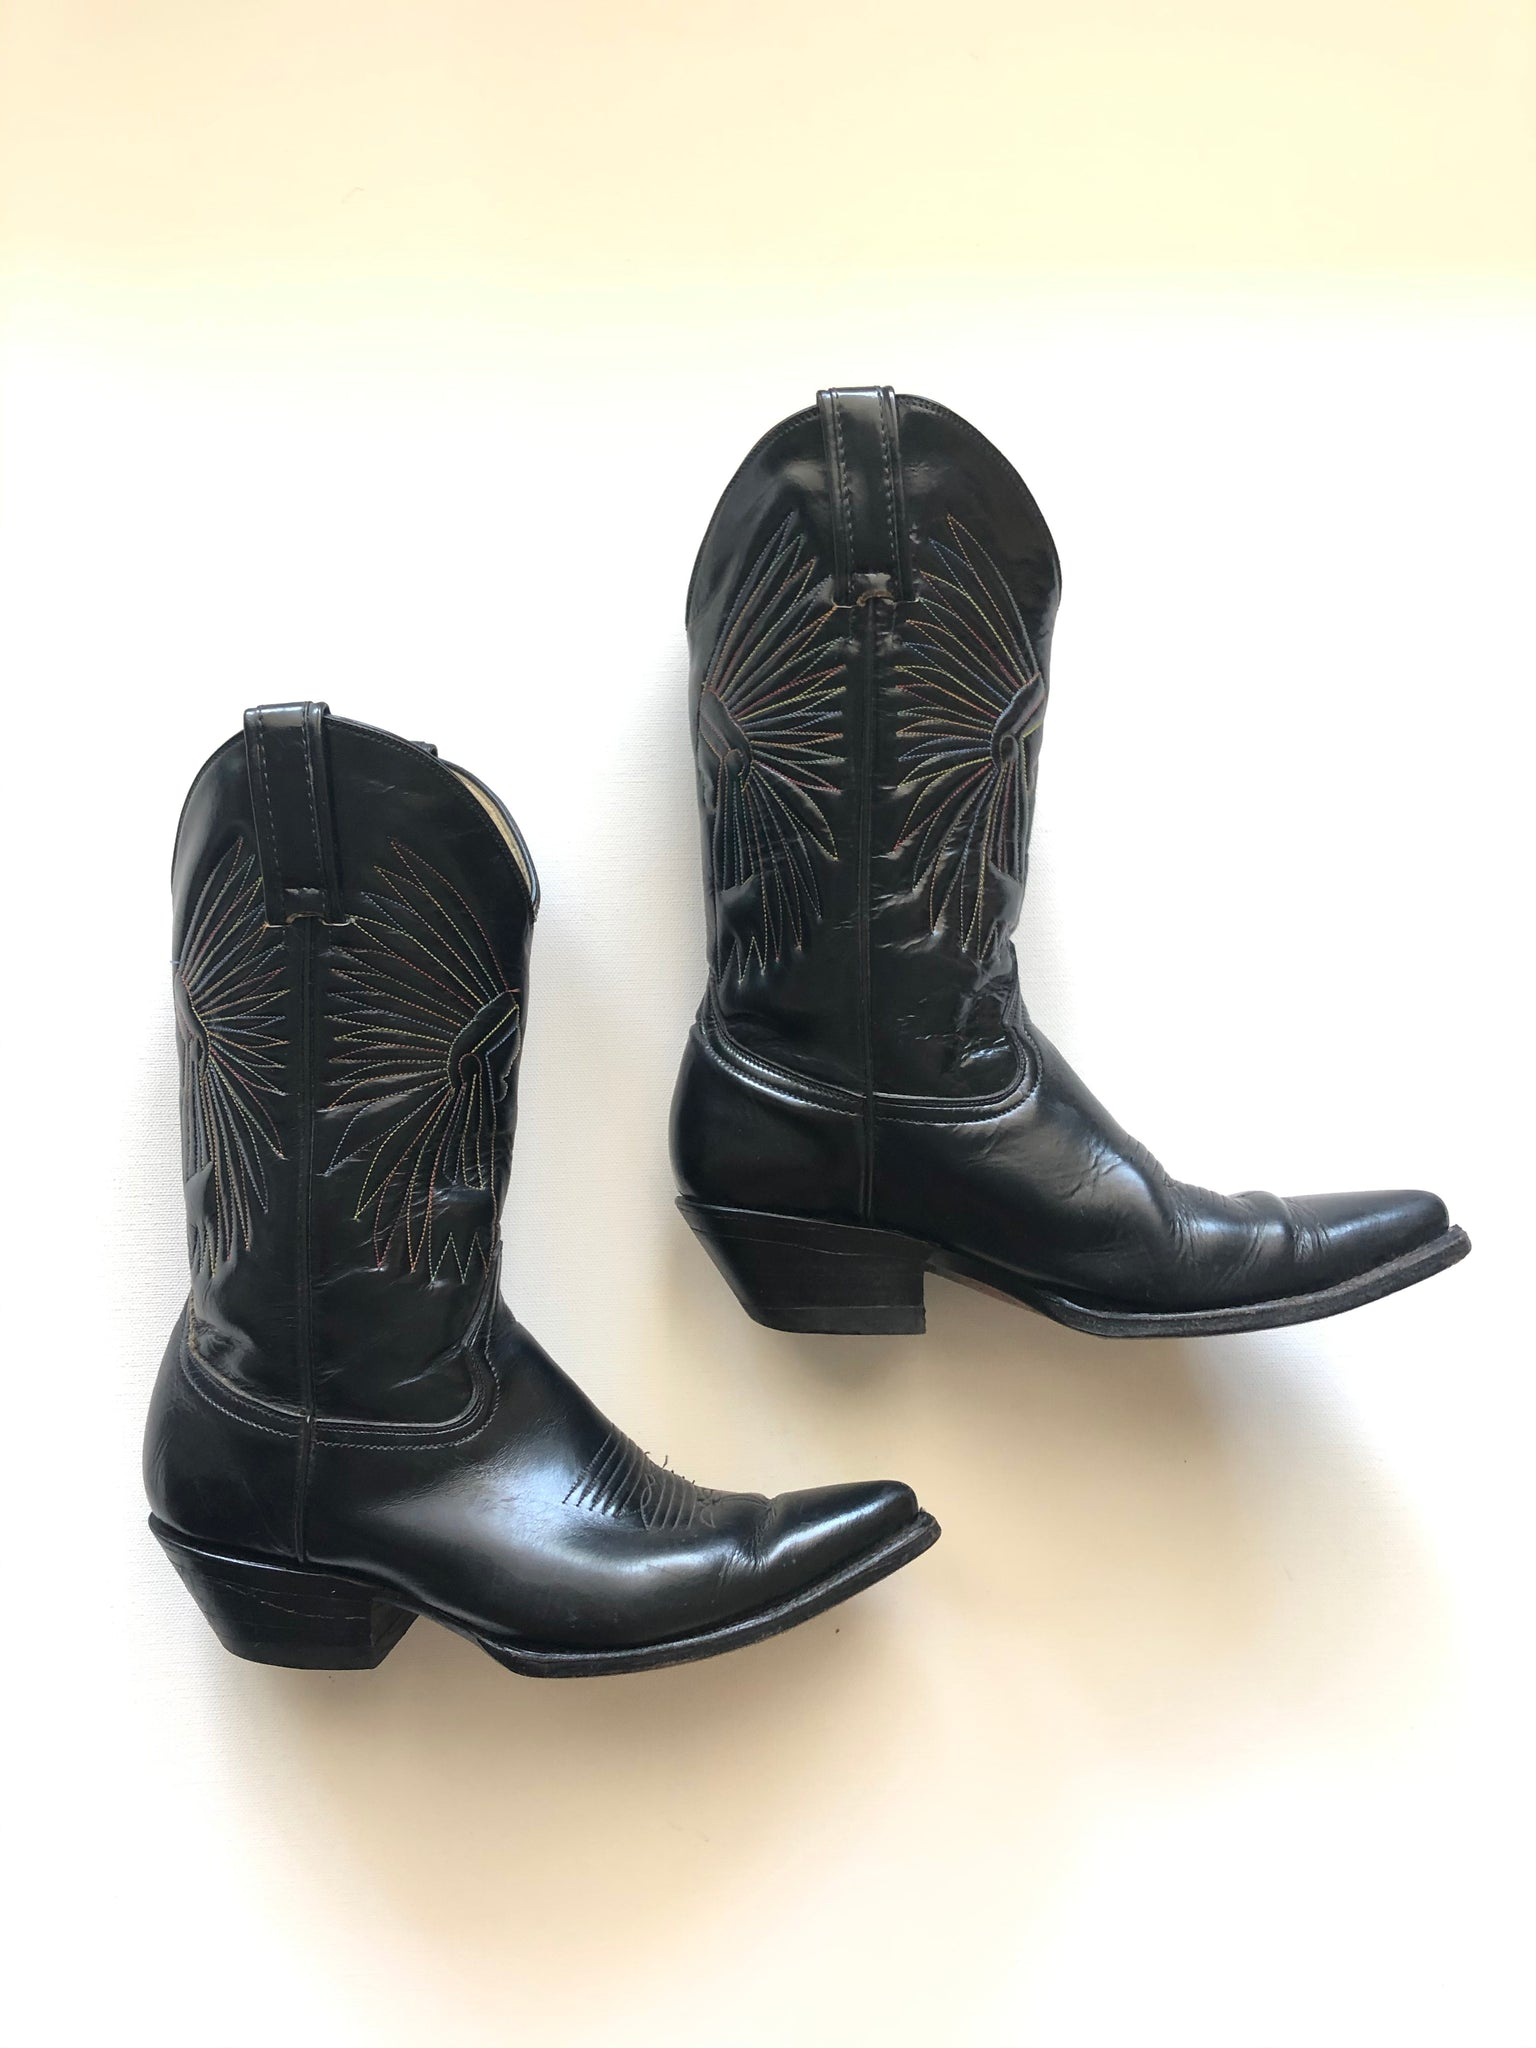 Vintage Western Boots - Embroidered Black